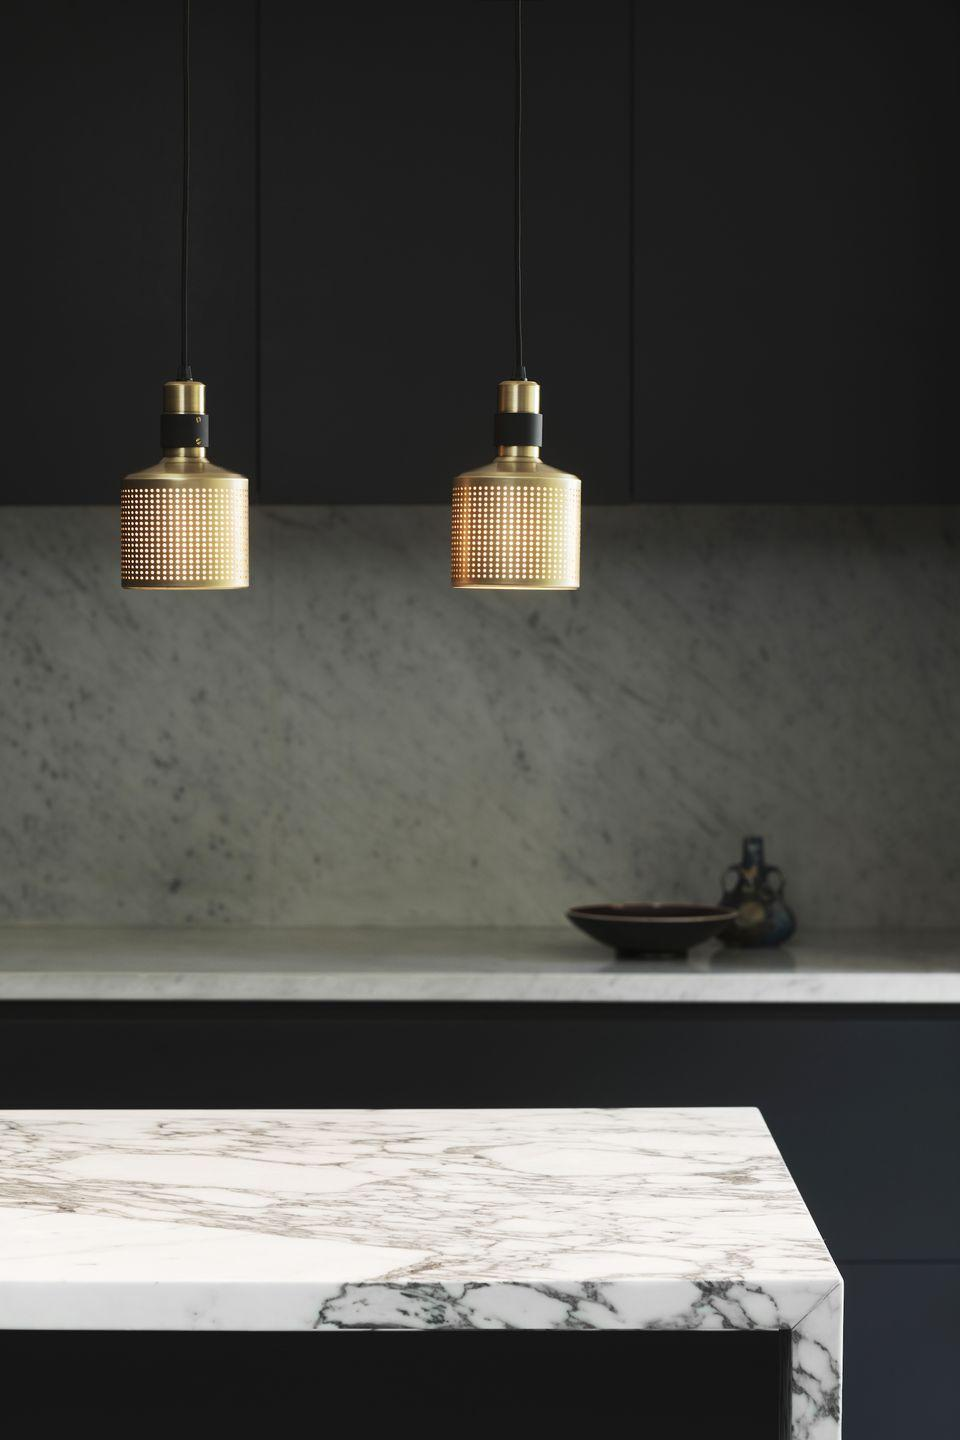 """<p>Changing the lighting brings a fresh perspective to a tired kitchen, and these brushed-brass pendants instantly add a modern touch. It's also worth noting that simply replacing the bulbs can have a huge impact too. If you've currently got harsh white light, a softer orange glow will give the space a completely different ambience – and be more forgiving on areas of wear and tear.</p><p>Pictured: Riddle pendant lights in brushed brass, <a href=""""https://bertfrank.co.uk/"""" rel=""""nofollow noopener"""" target=""""_blank"""" data-ylk=""""slk:Bert Frank"""" class=""""link rapid-noclick-resp"""">Bert Frank</a></p>"""